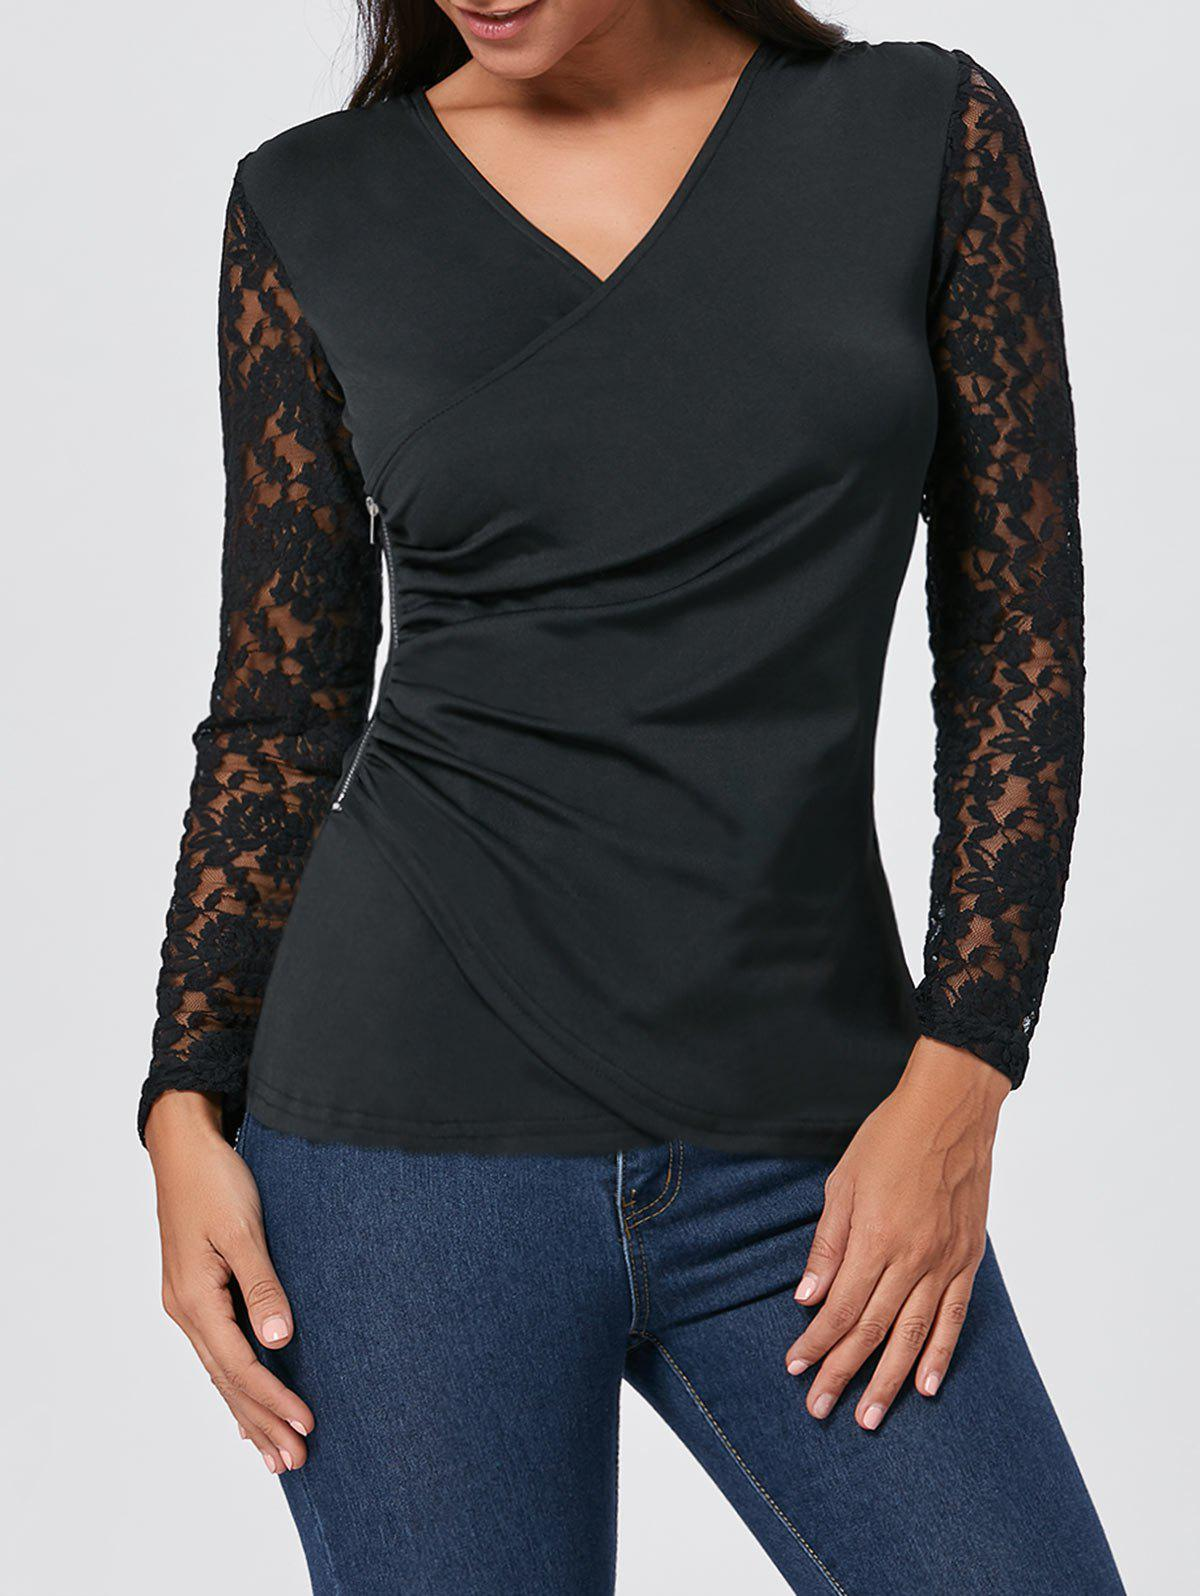 Asymmetrical Lace Insert Zipper Draped T-shirt - BLACK XL